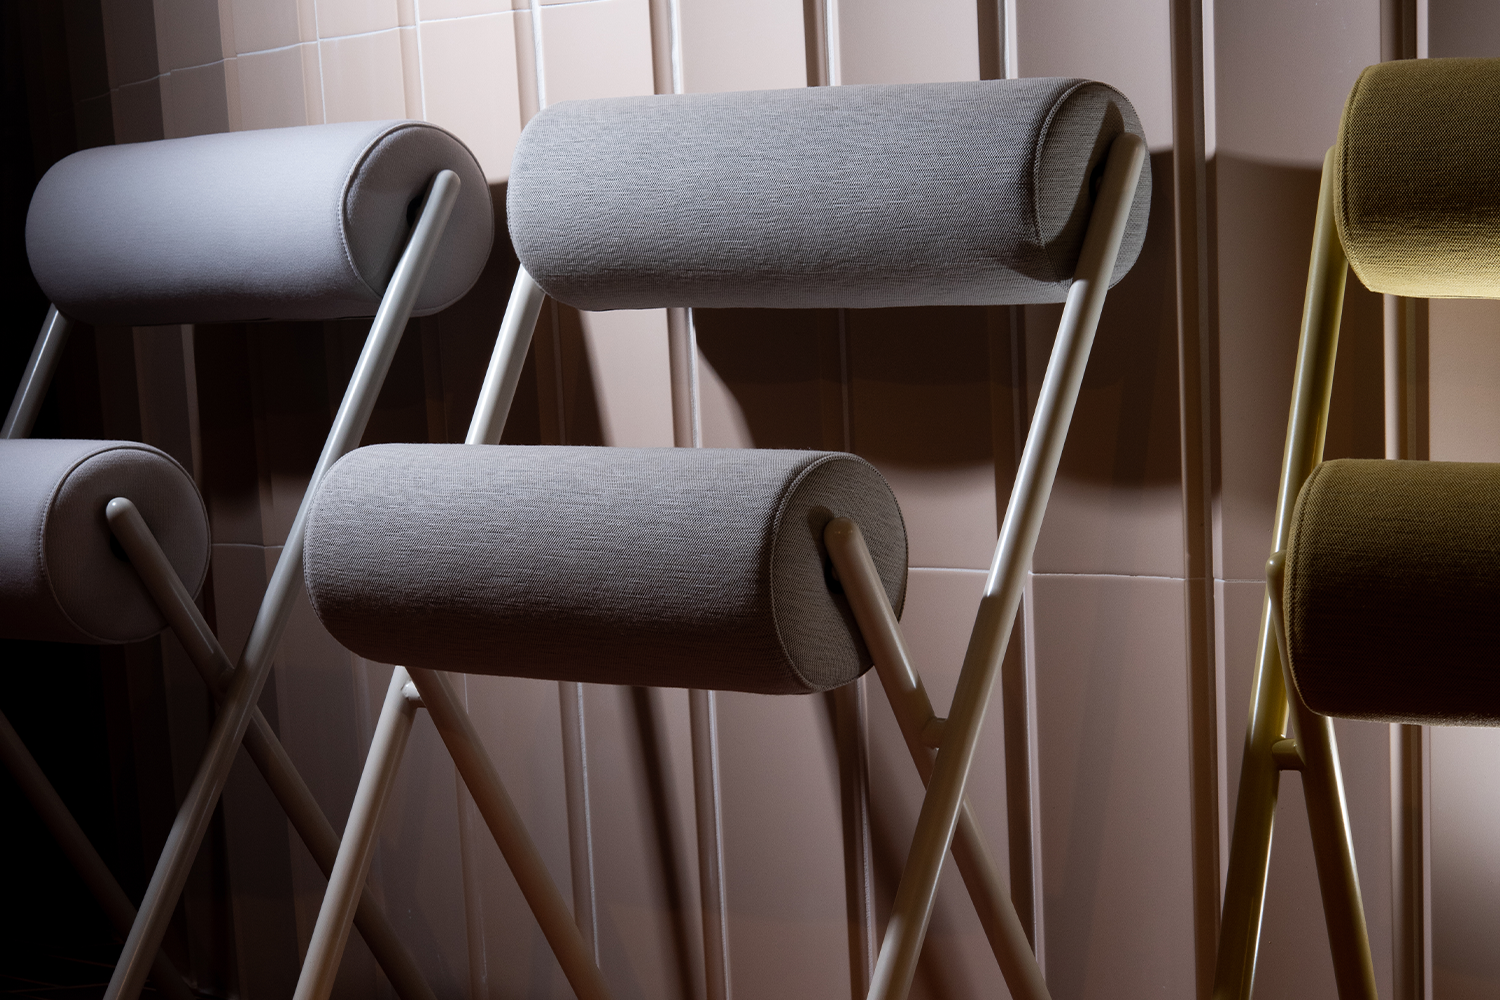 New product: On a Roll with Sancal